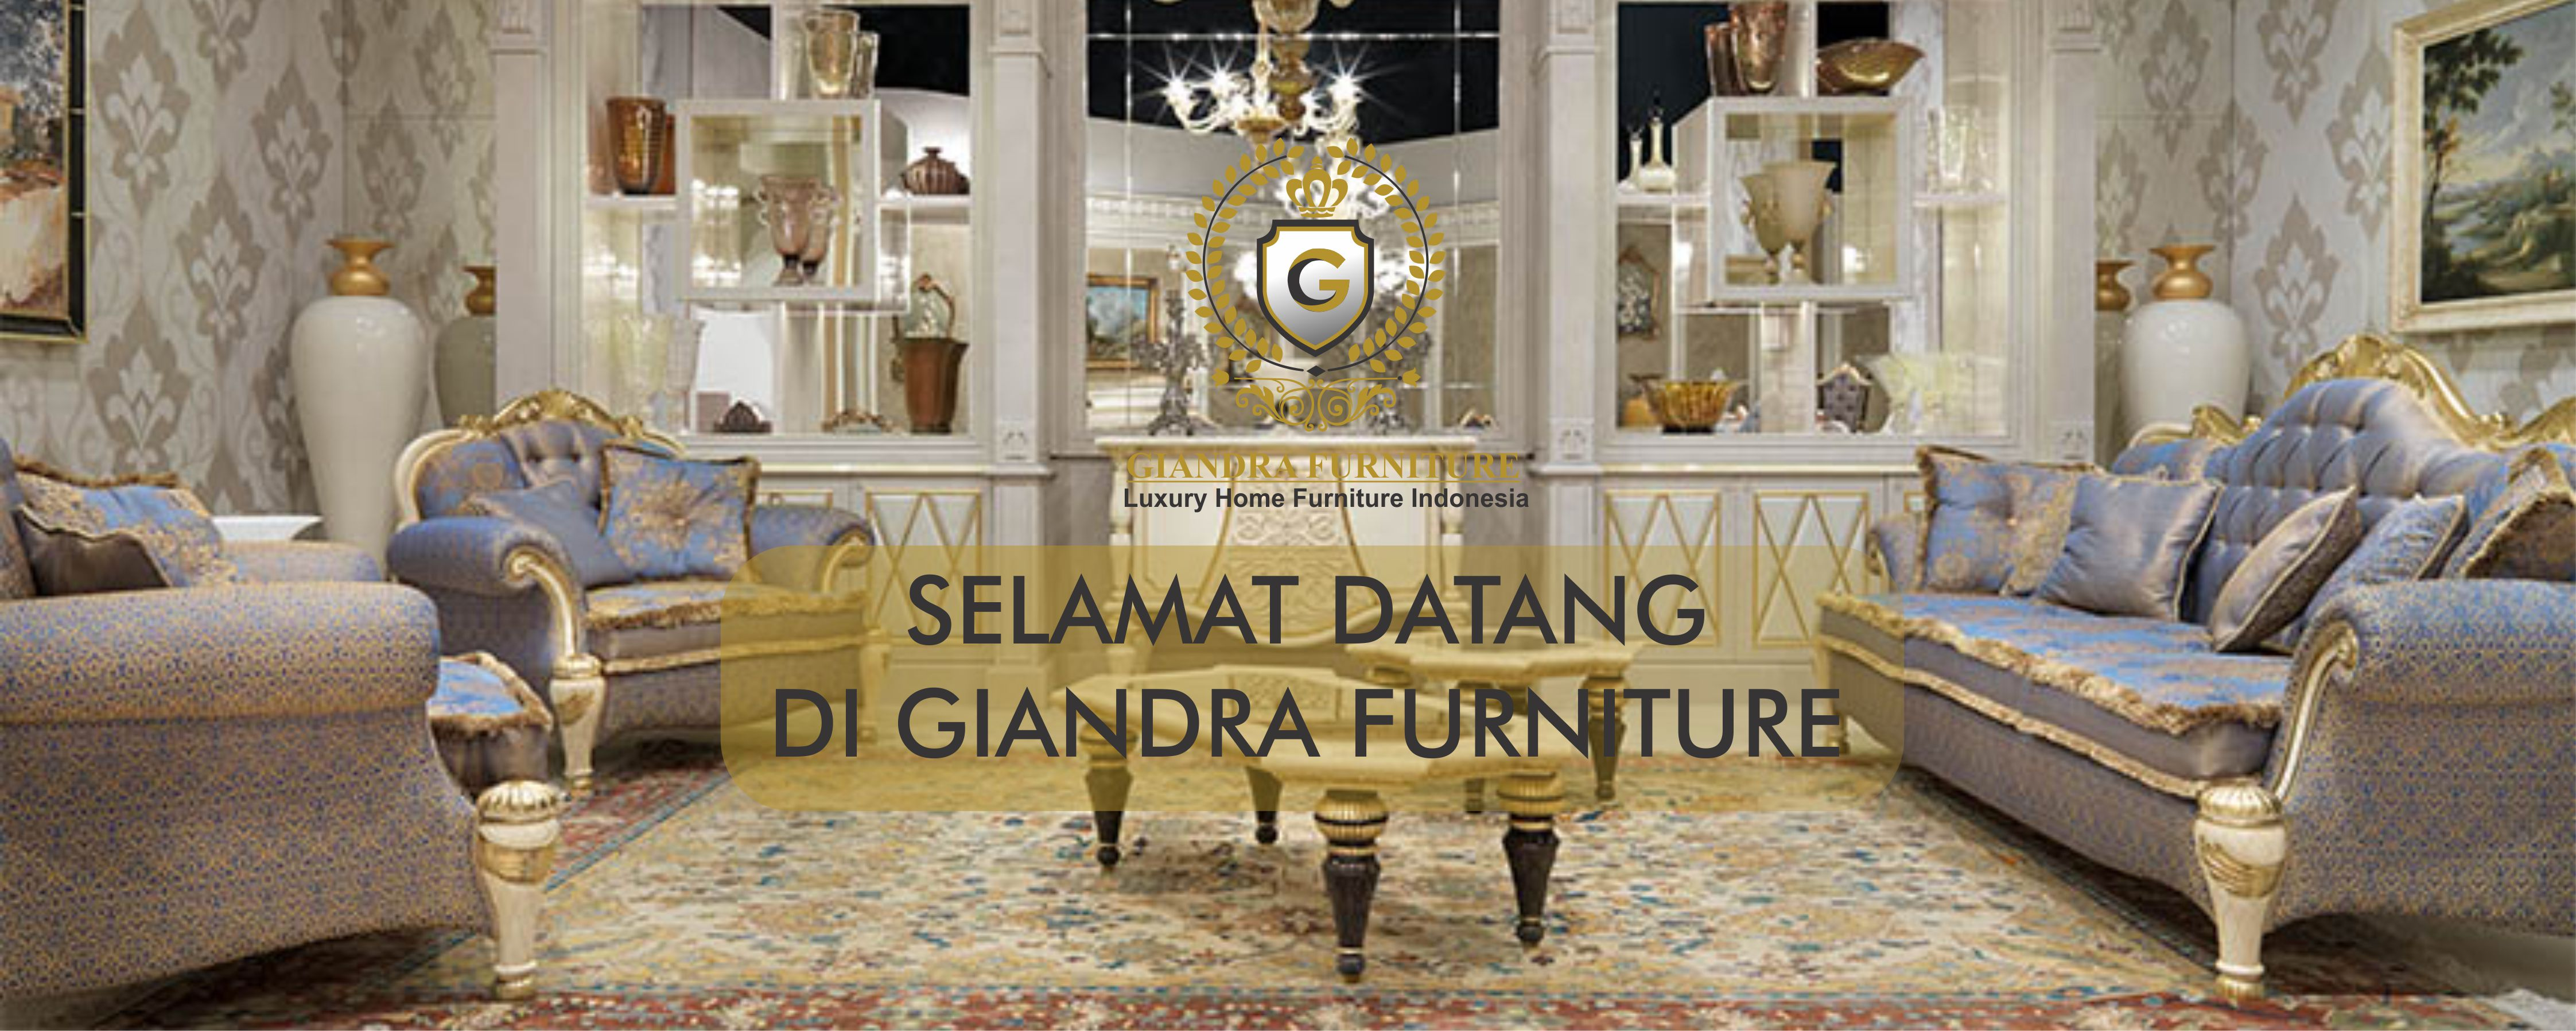 Giandra Furniture 1